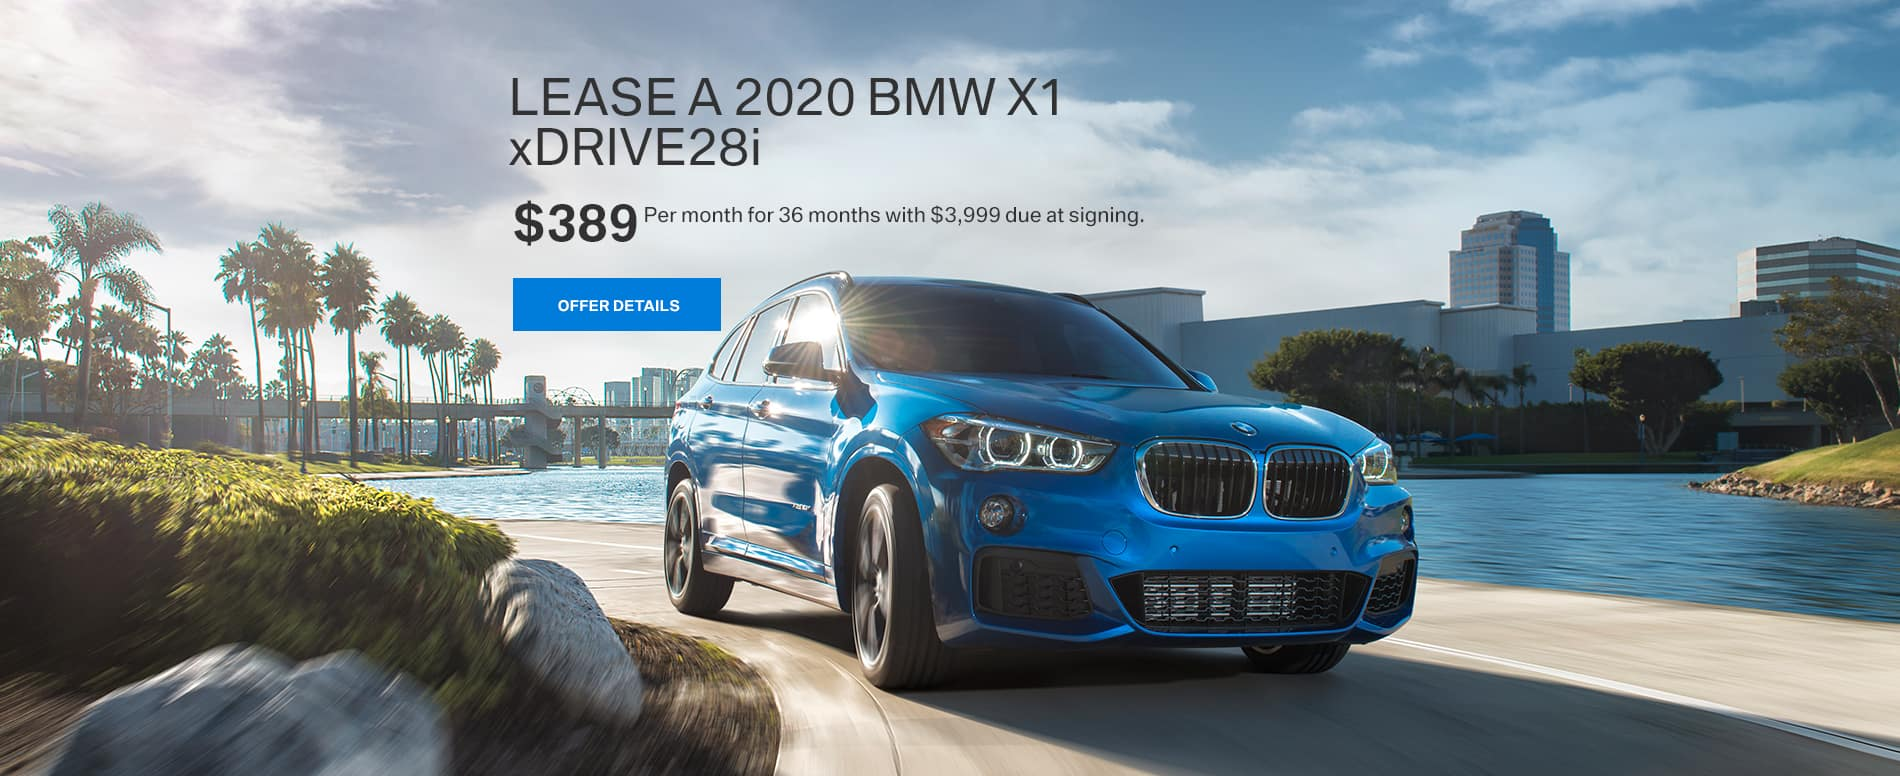 Lease a 2020 BMW X1 xDRIVE28i for $389 per month at BMW of Fort Walton Beach